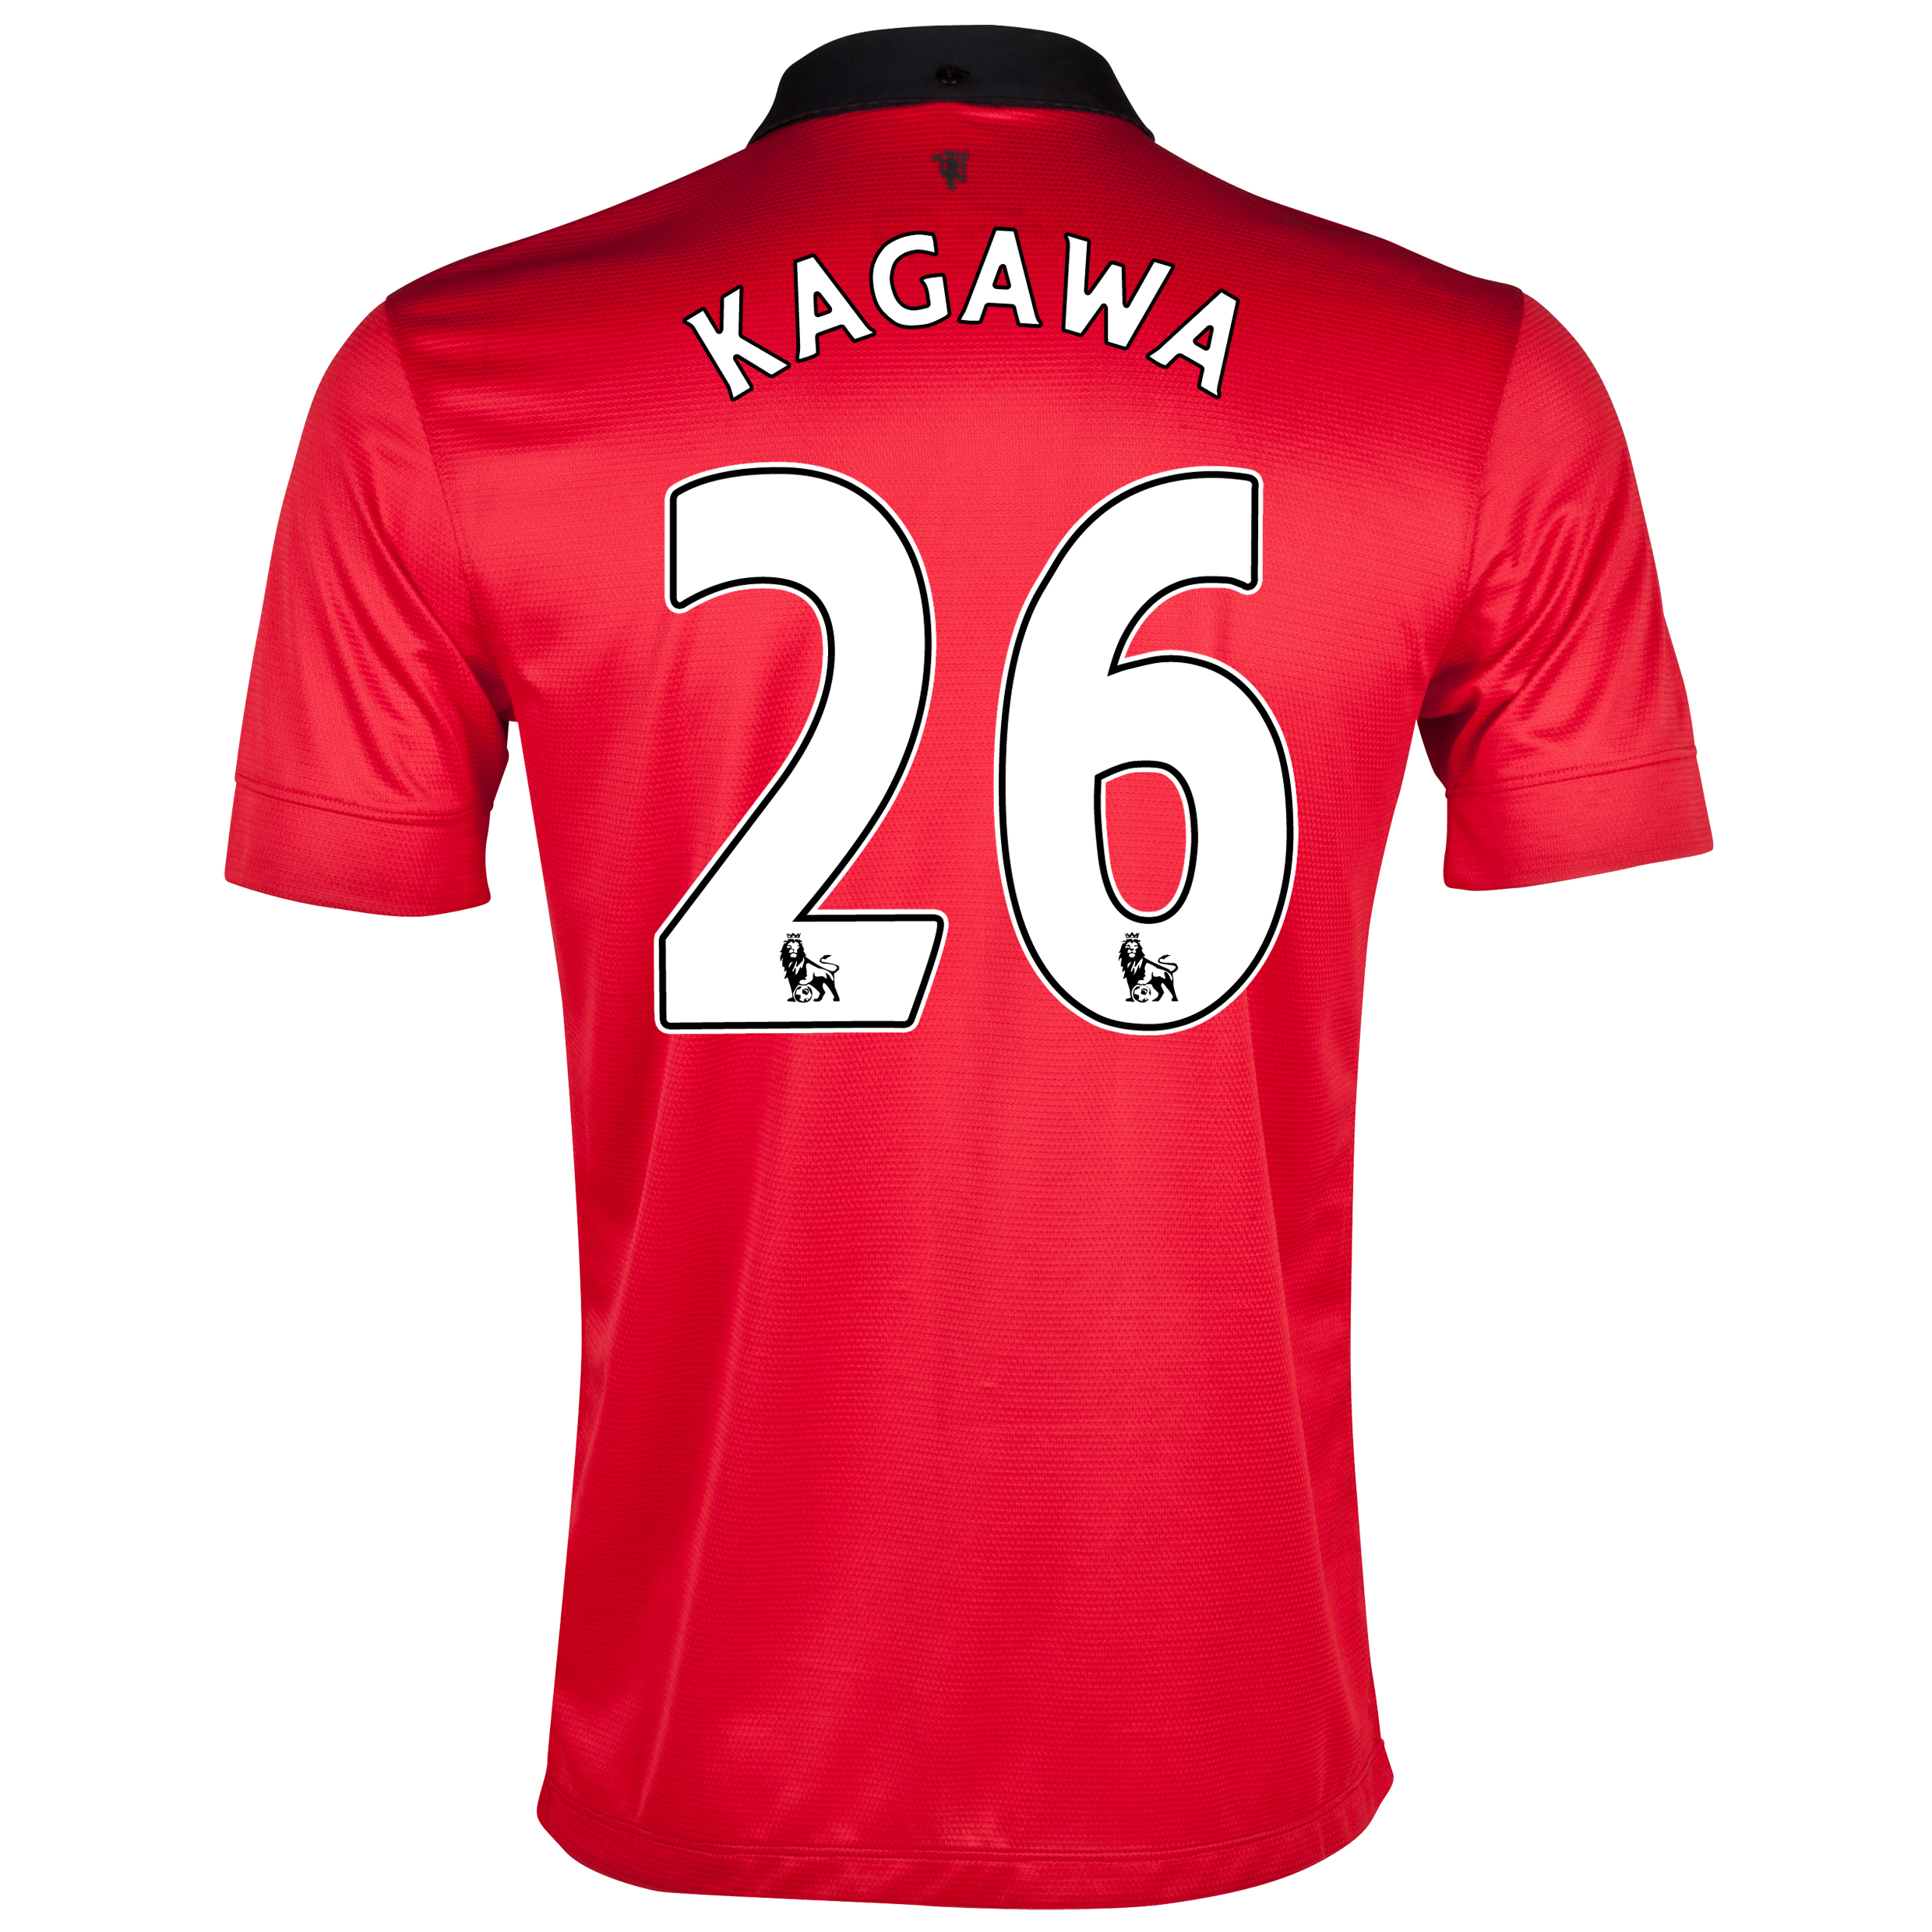 Manchester United Home Shirt 2013/14 - Kids with Kagawa 26 printing